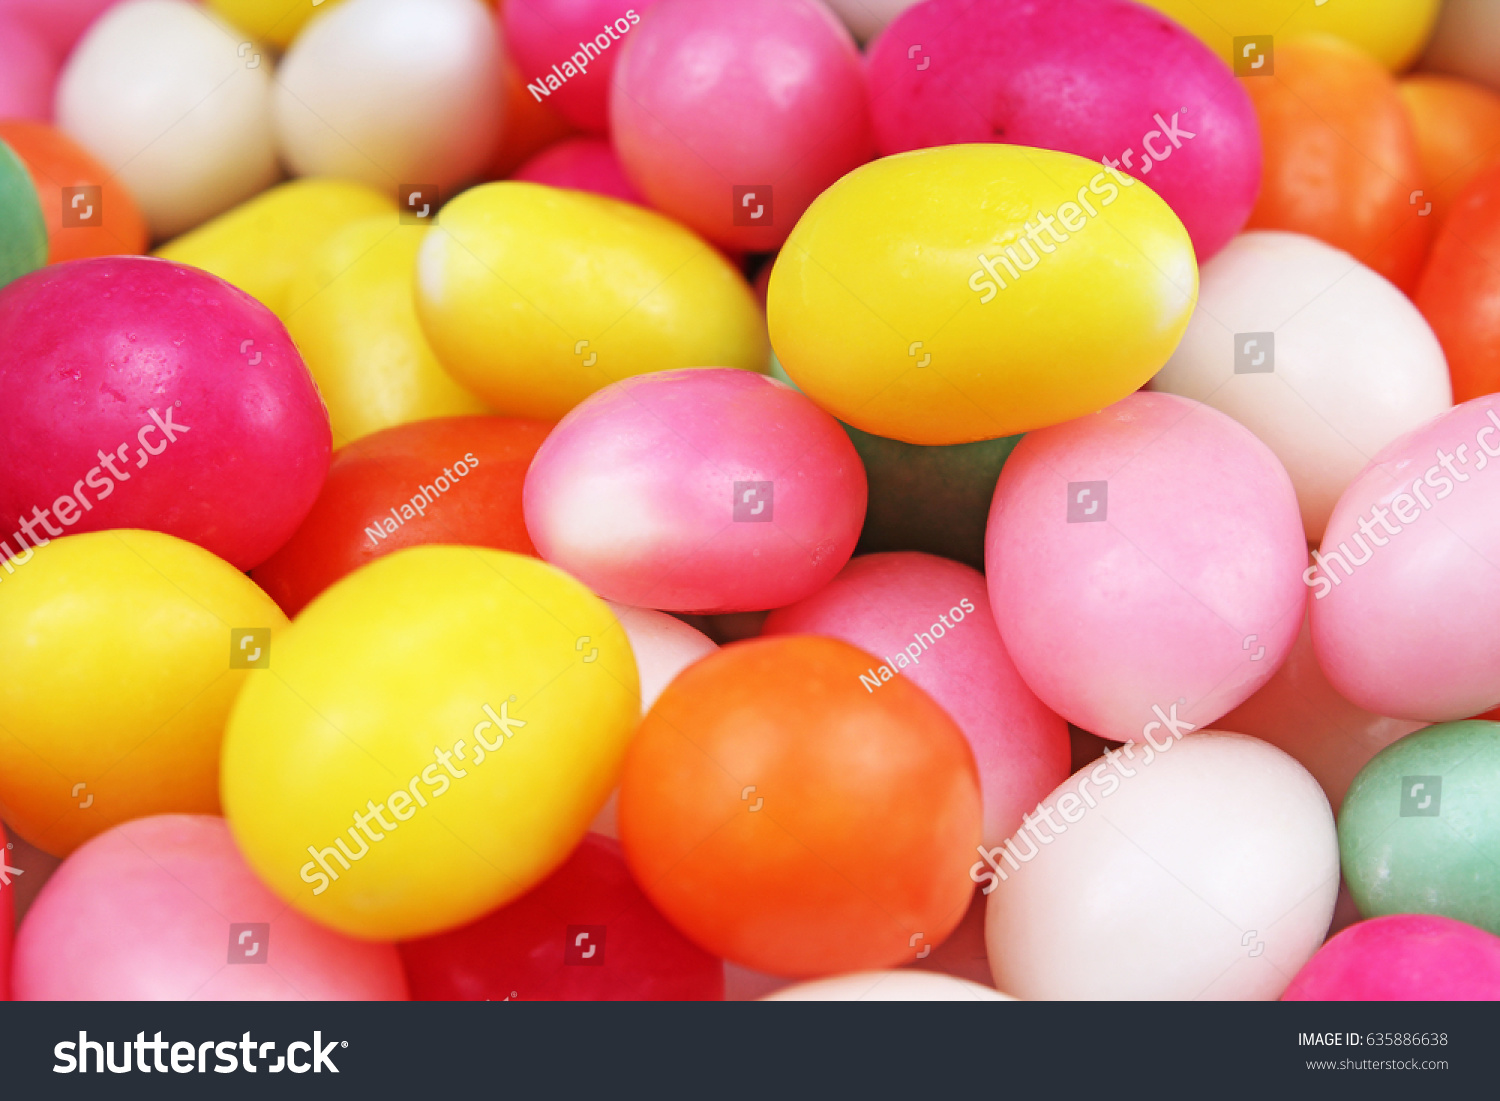 Colorful Candy Background Wallpaper Shiny Sugar Texture